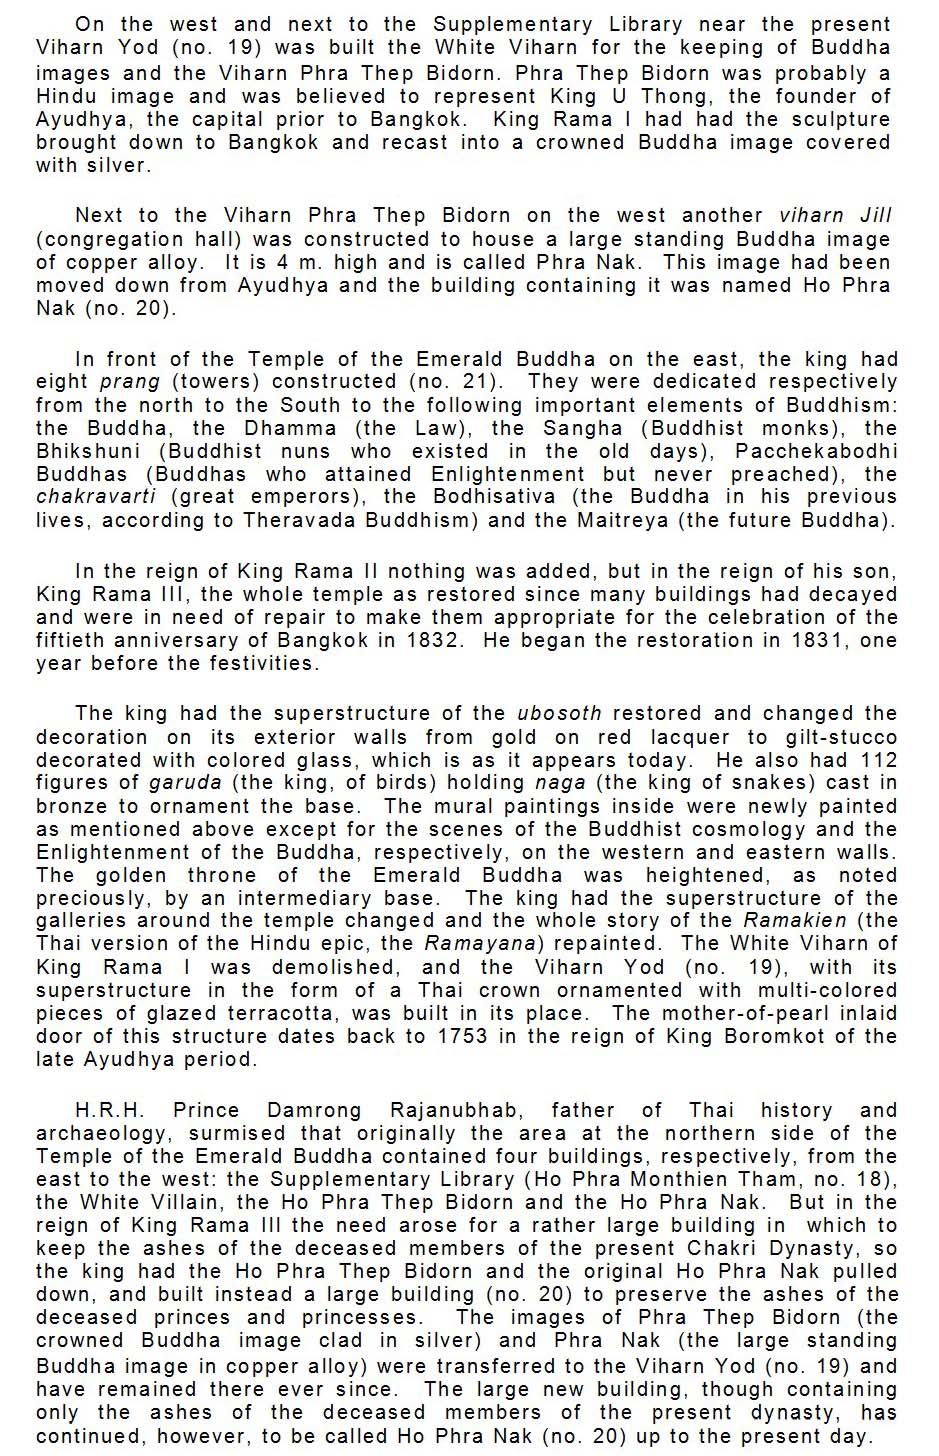 History of the Emerald Buddha page 6